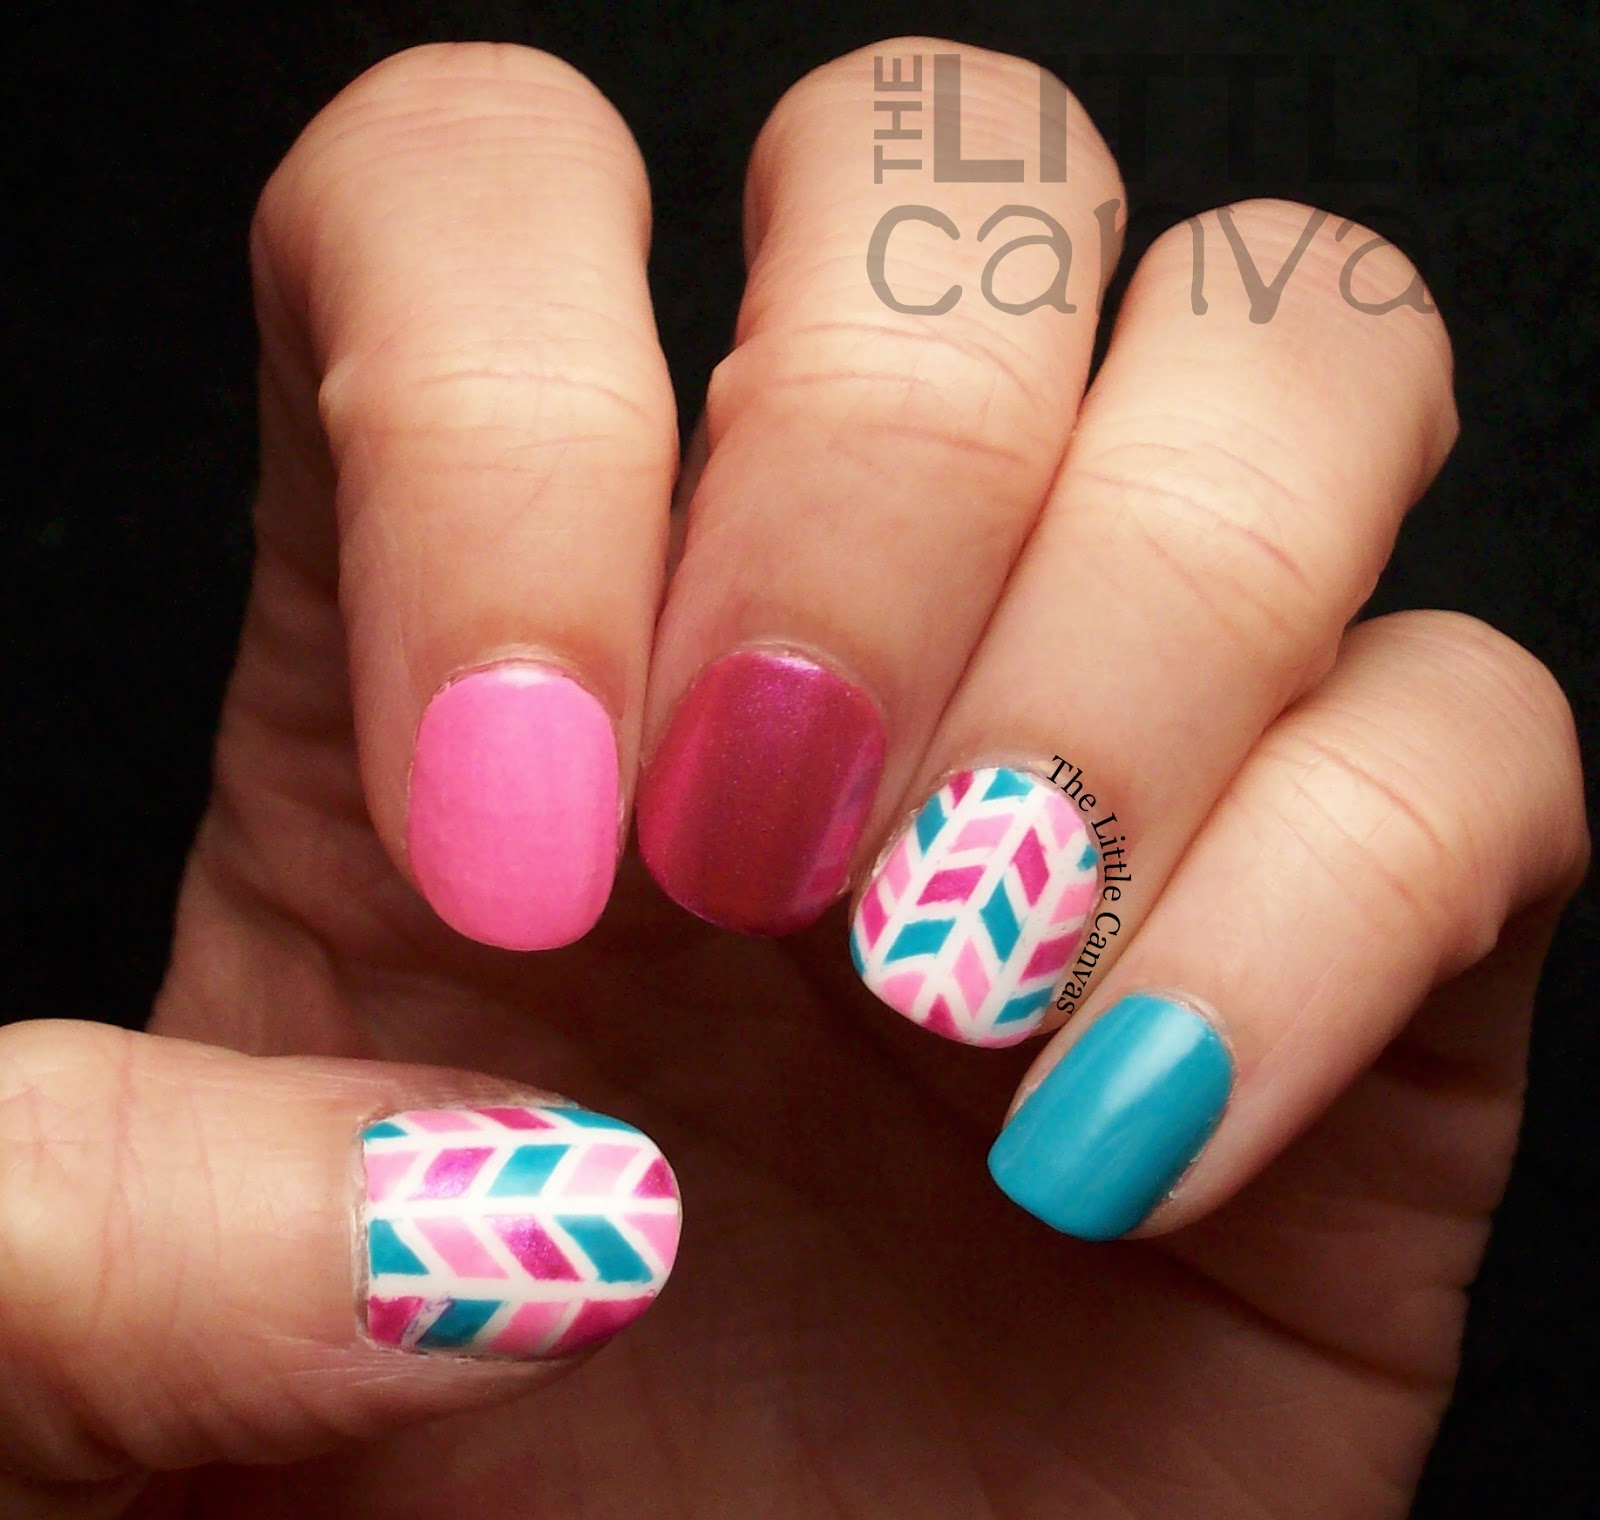 Nail Art Using Painters Tape: Piggy Paint Tape Manicure! And Giveaway!